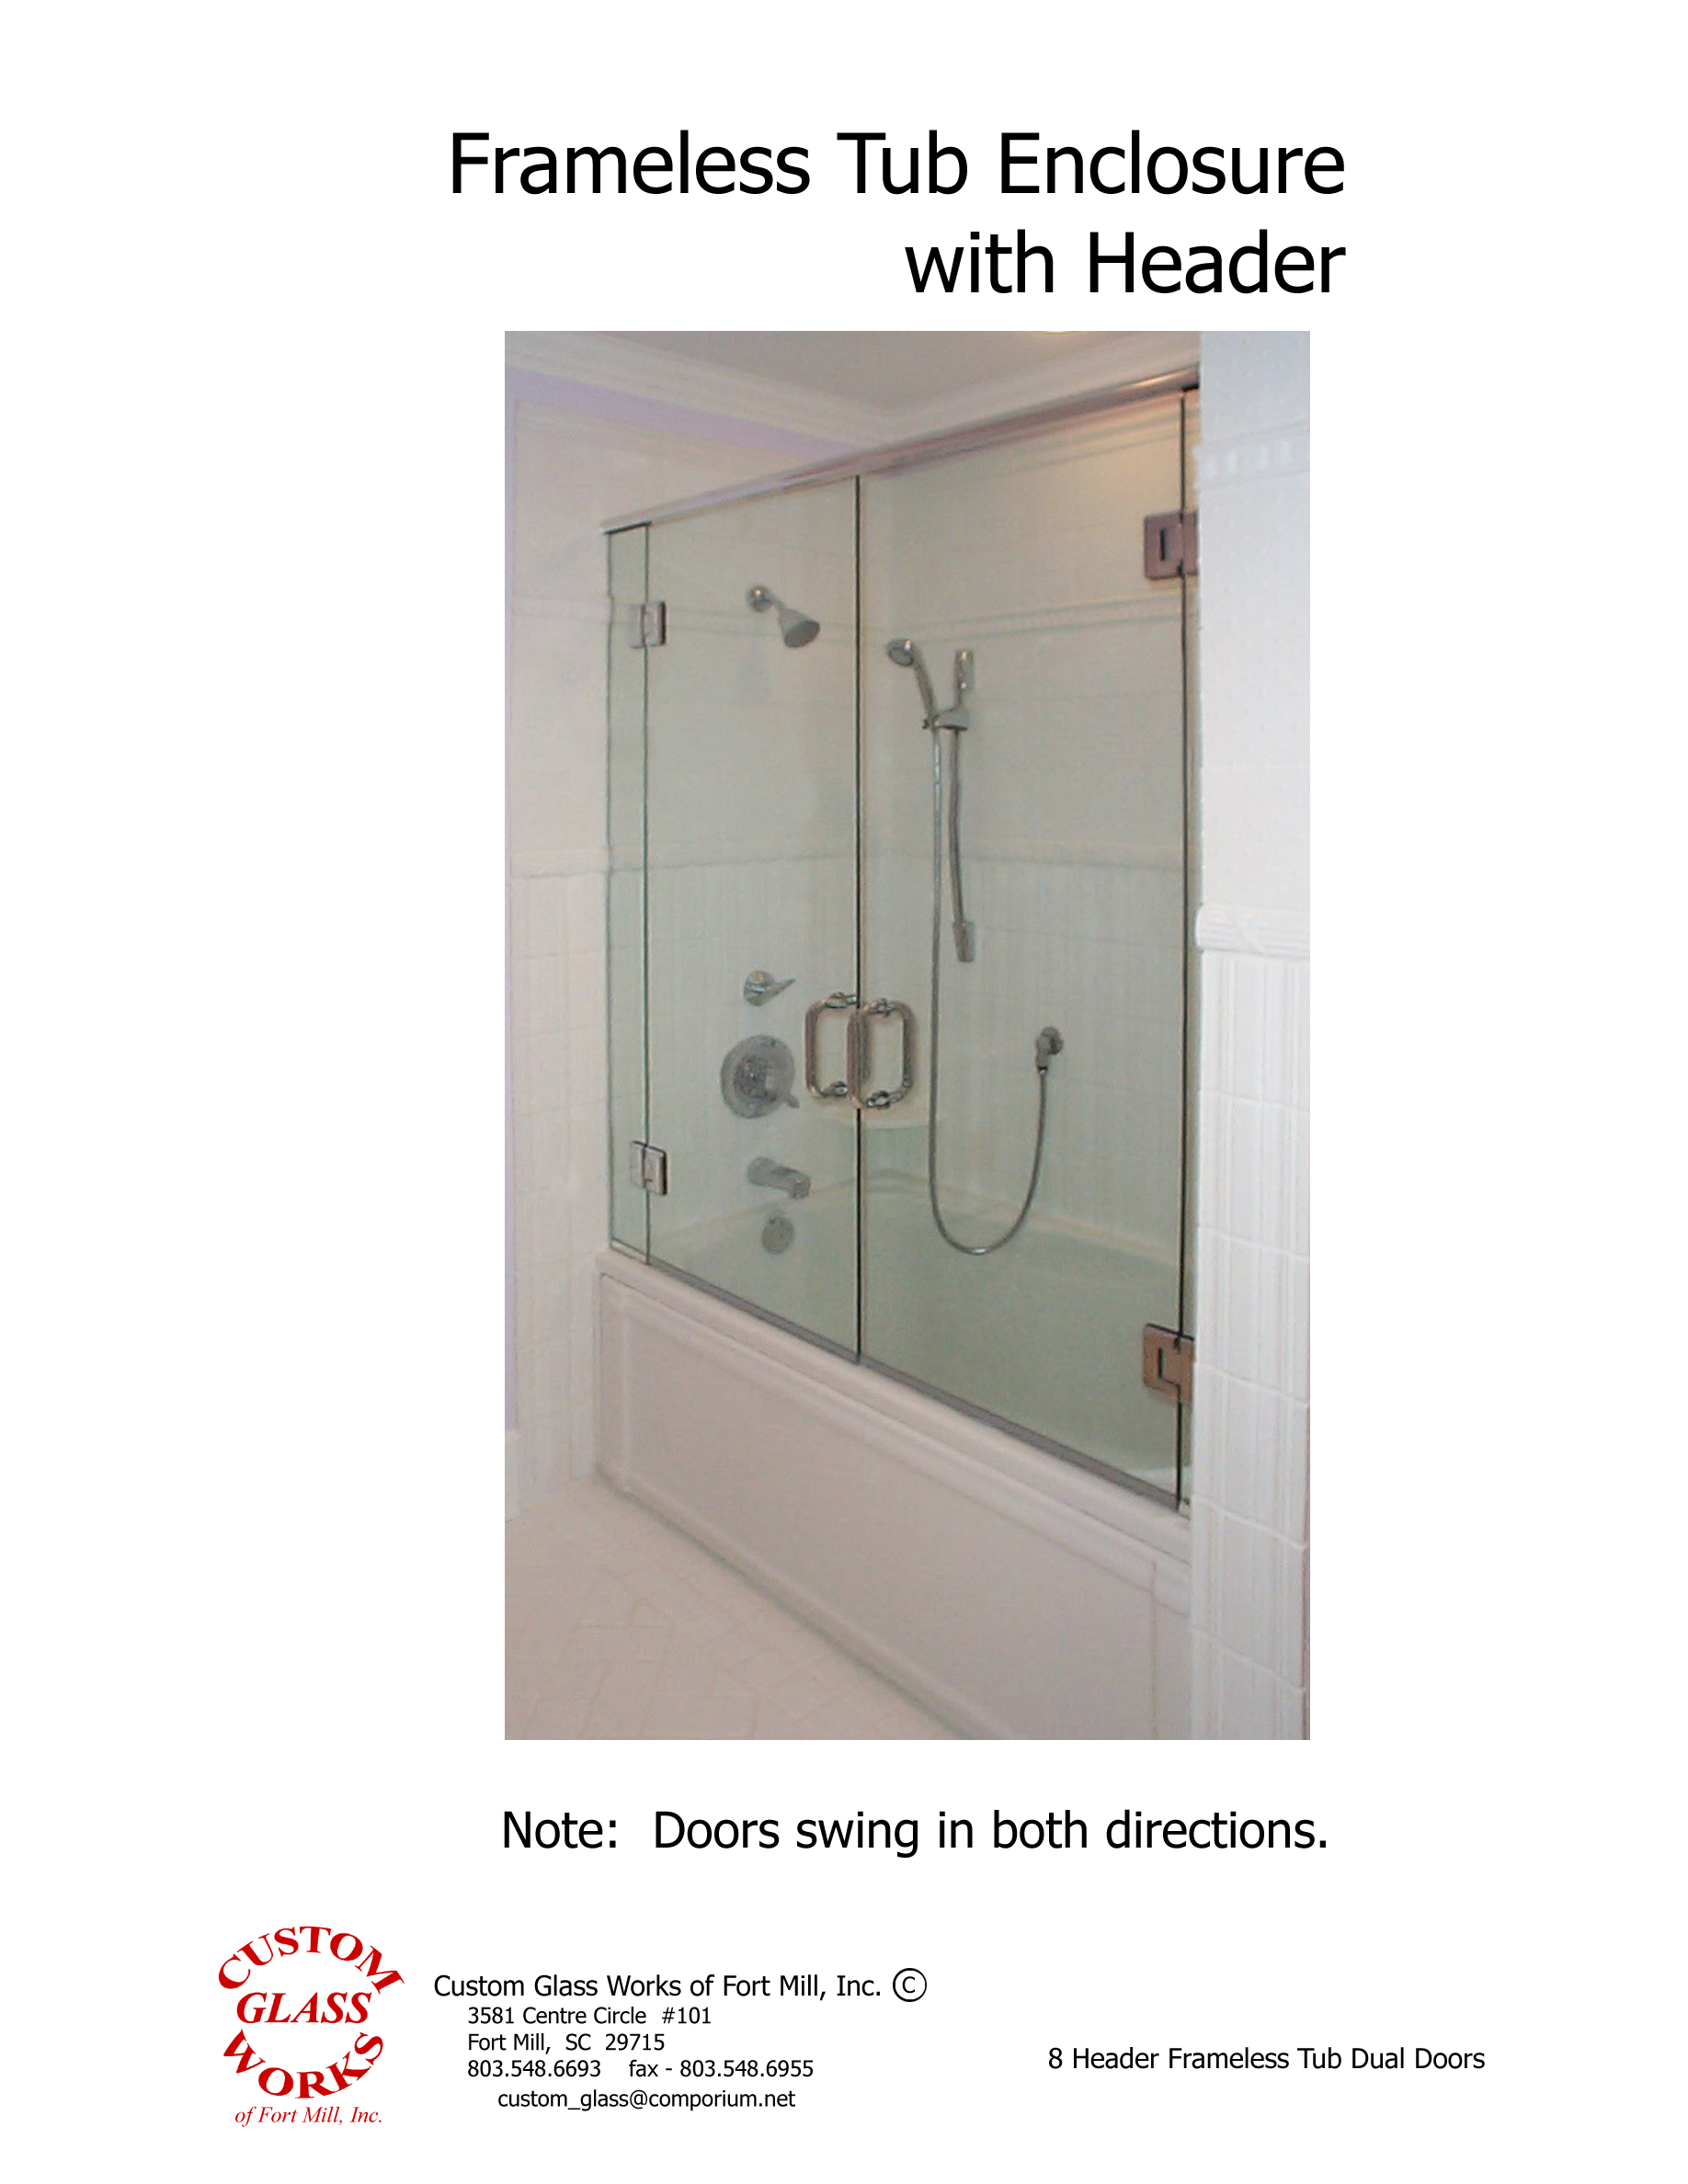 8 Header Frameless Tub Dual Doors